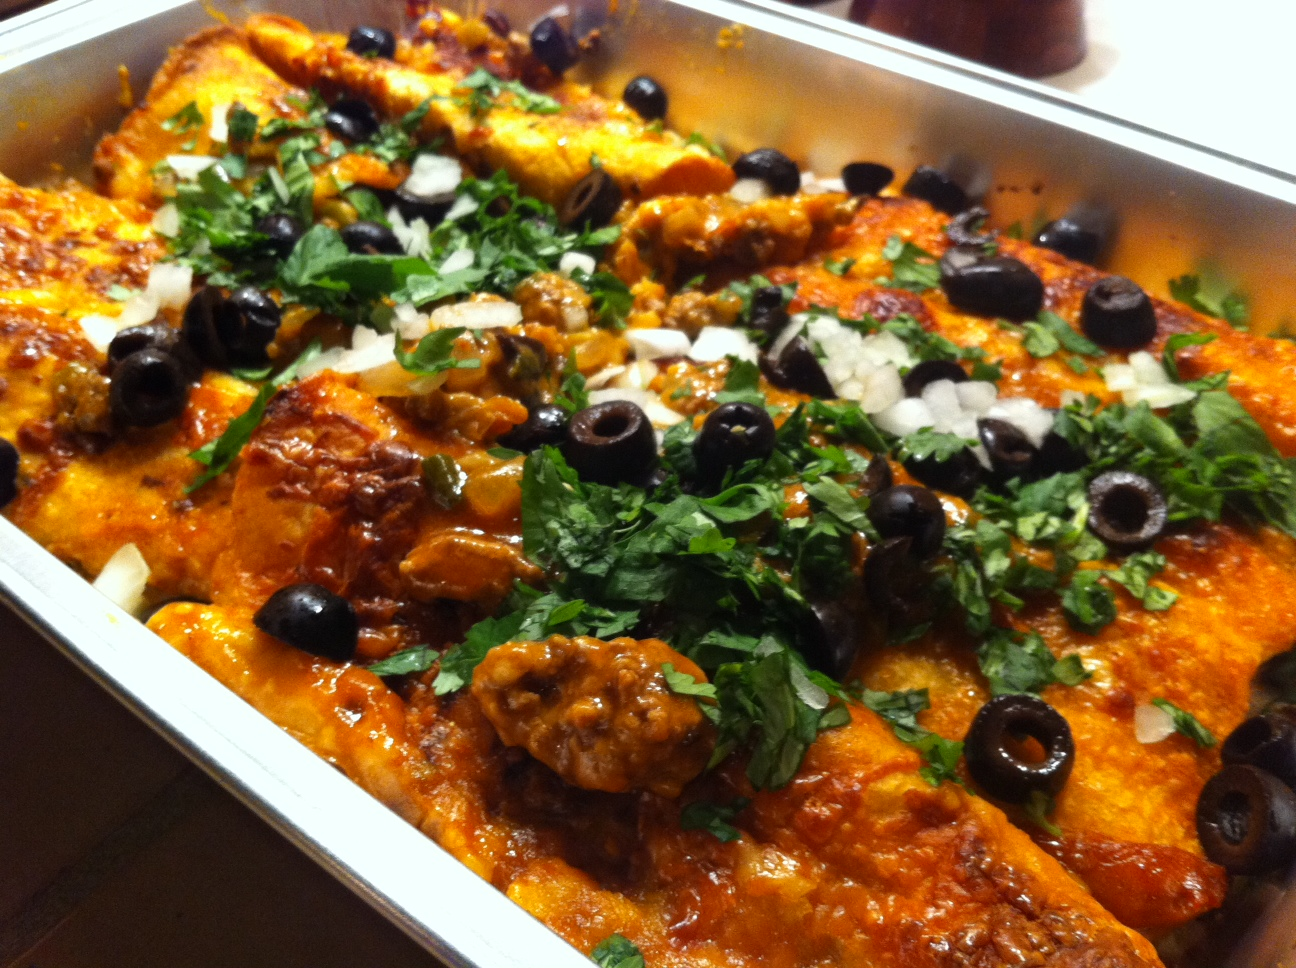 ... Meat and Potatoes Foodie: Pioneer Woman's Simple Perfect Enchiladas